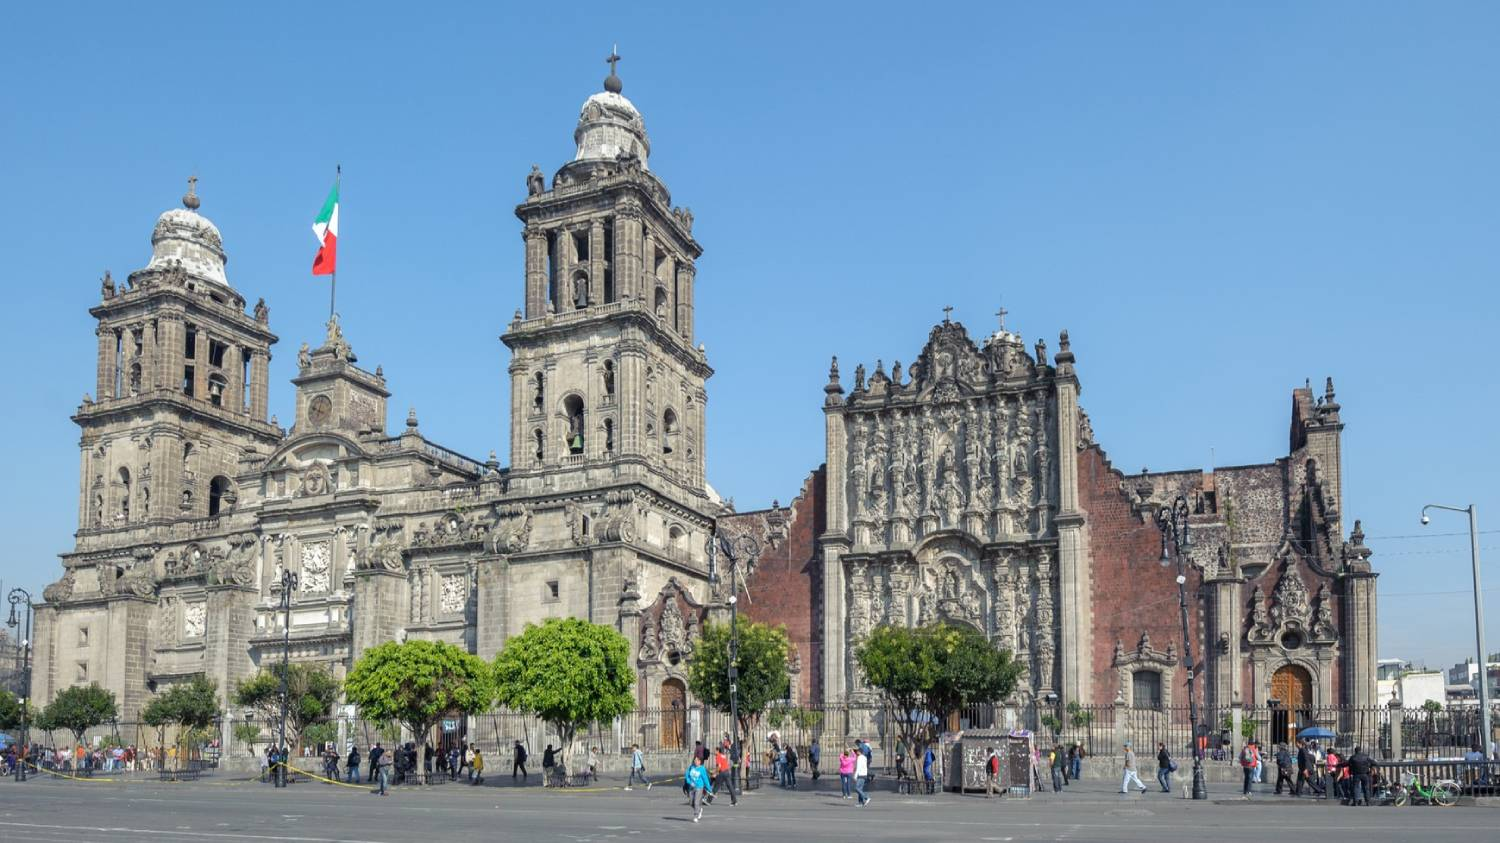 Metropolitan Cathedral (Catedral Metropolitana) - Things To Do In Mexico City